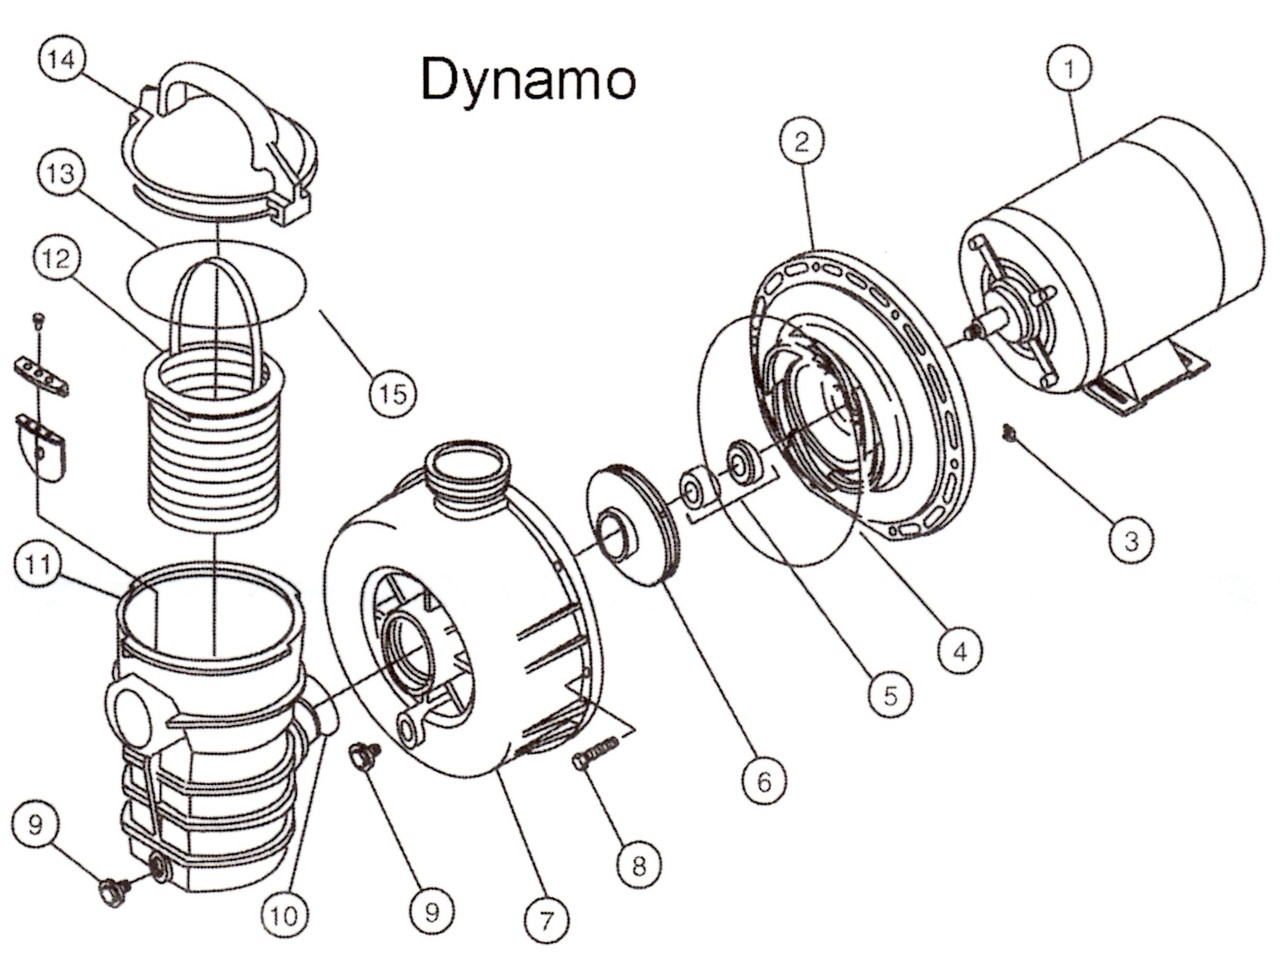 Pentair Dynamo Above Ground Pool Pump Parts